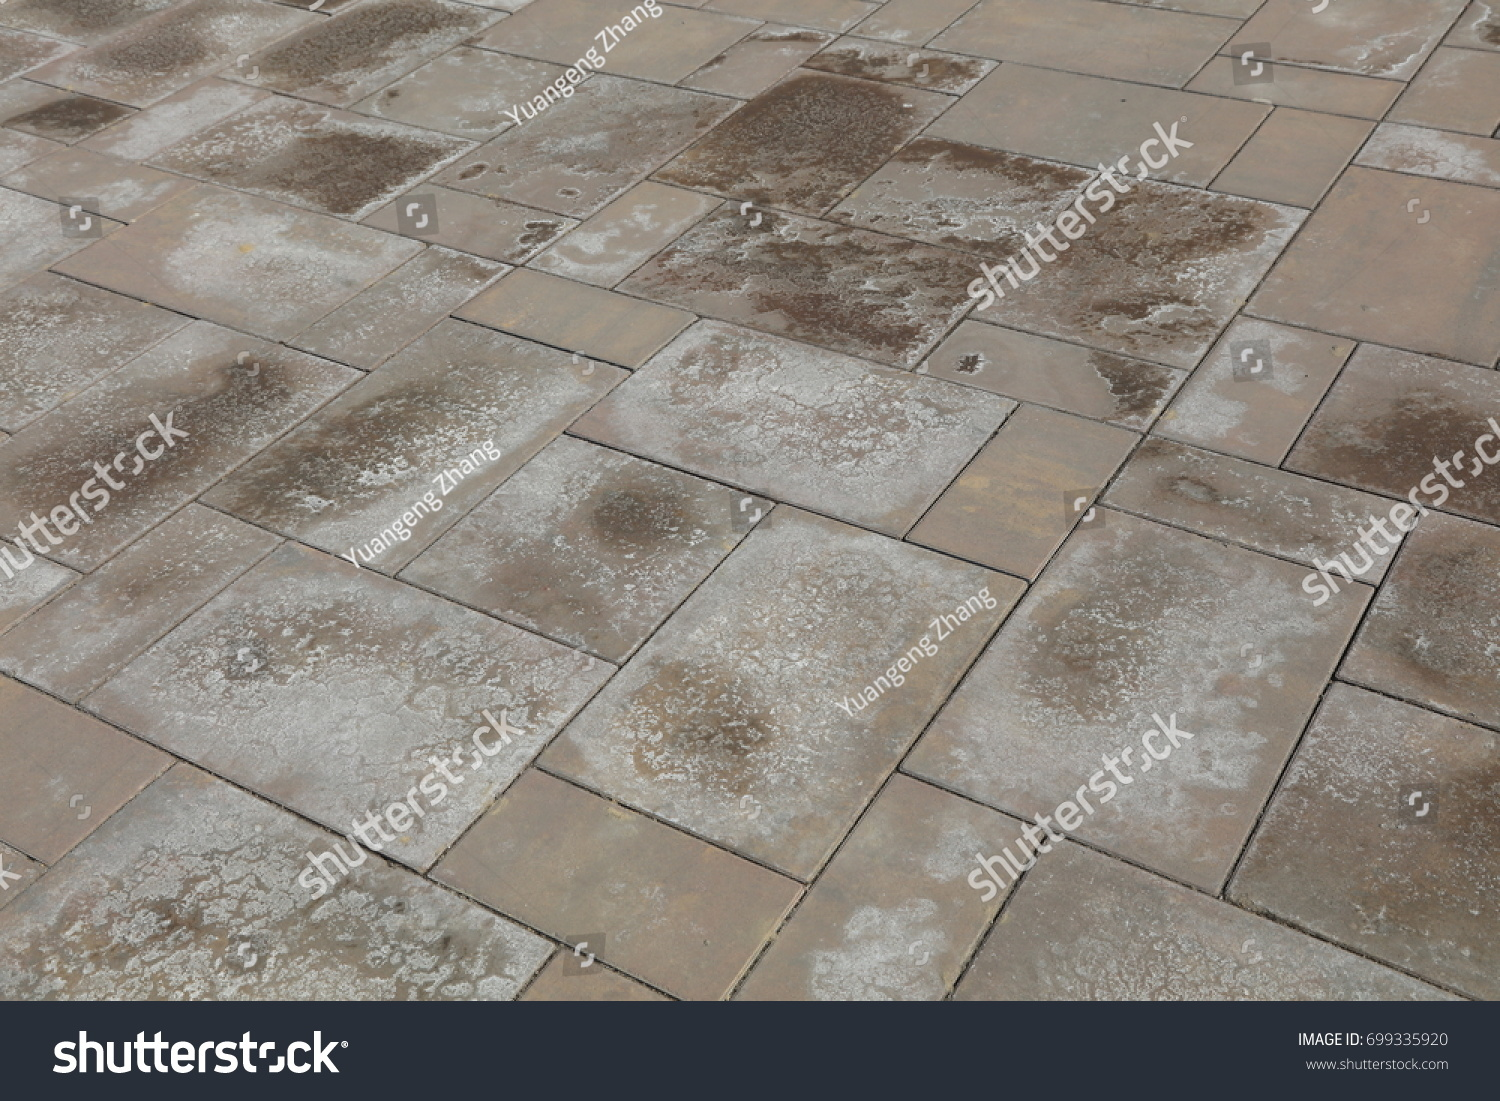 Alkali stain on cement floor tile stock photo 699335920 shutterstock alkali stain on the cement floor tile dailygadgetfo Gallery